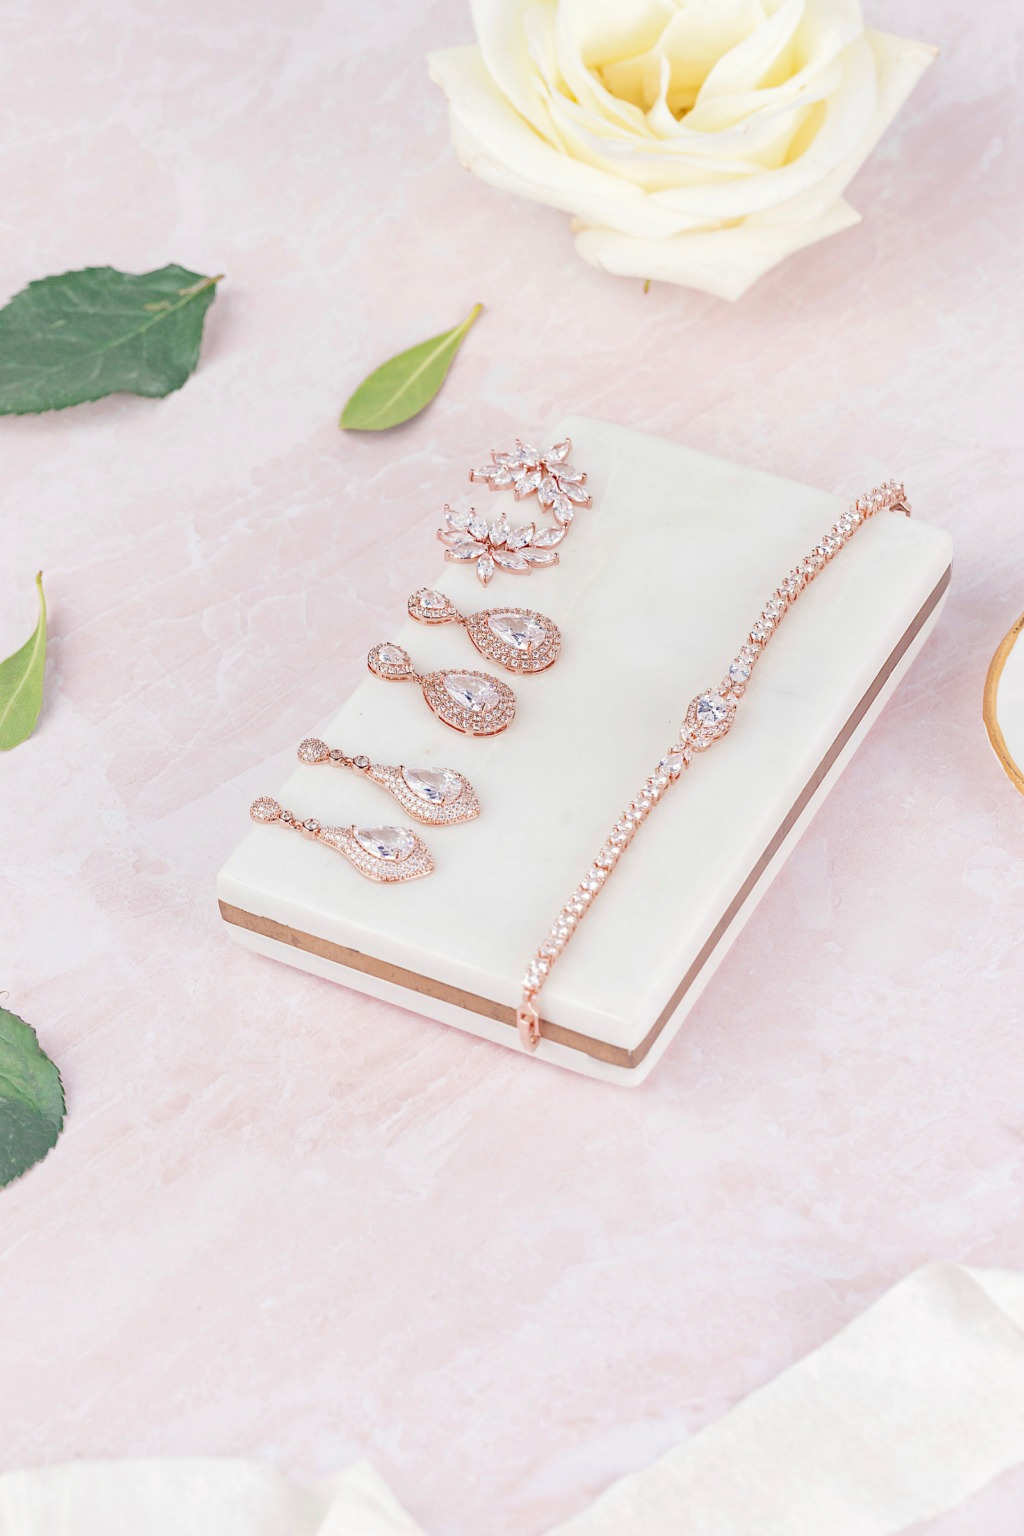 Shop at Wink of Pink Shop for gorgeous wedding jewelry for the modern bride. Whether you're looking for to add a little sparkle to